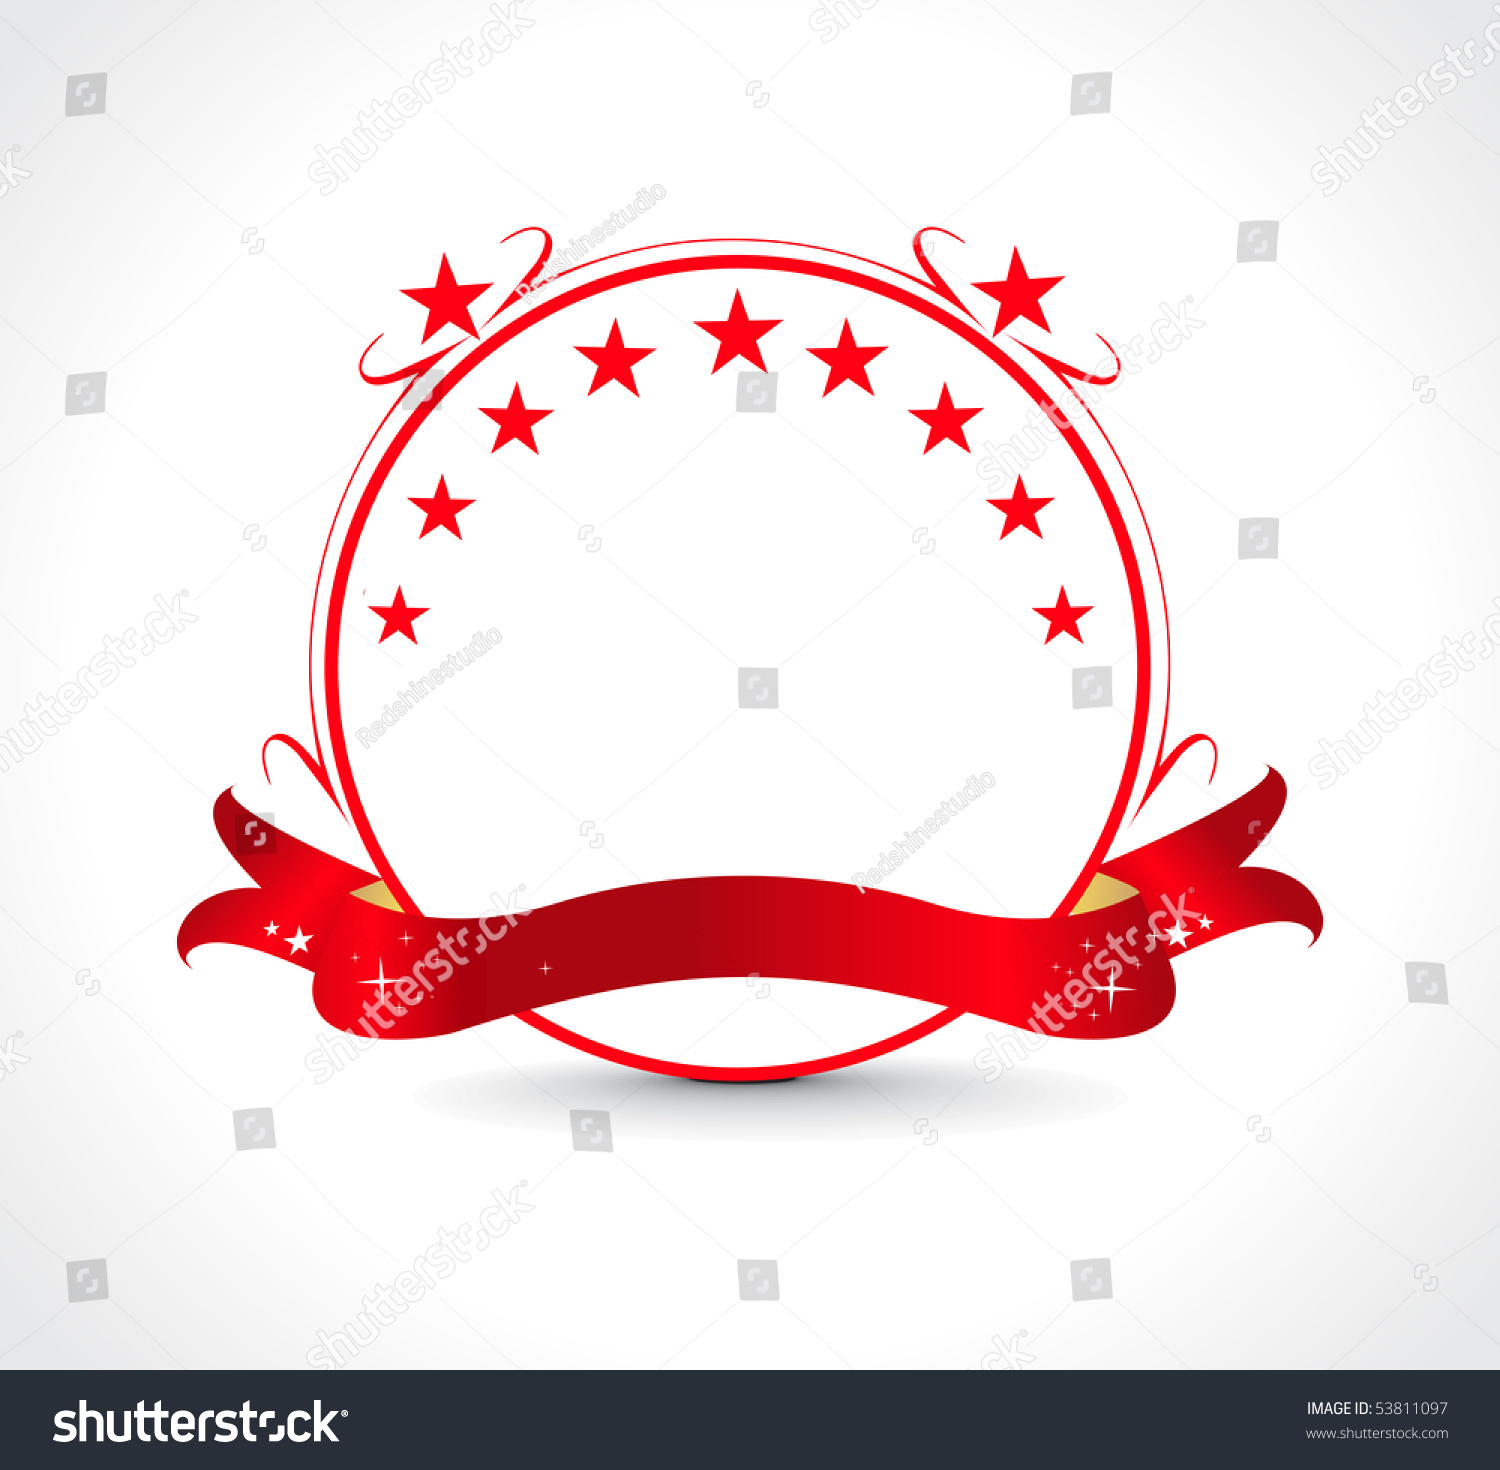 Red Ribbons Red Banners Design Vector Stock Vector 53811097 ...